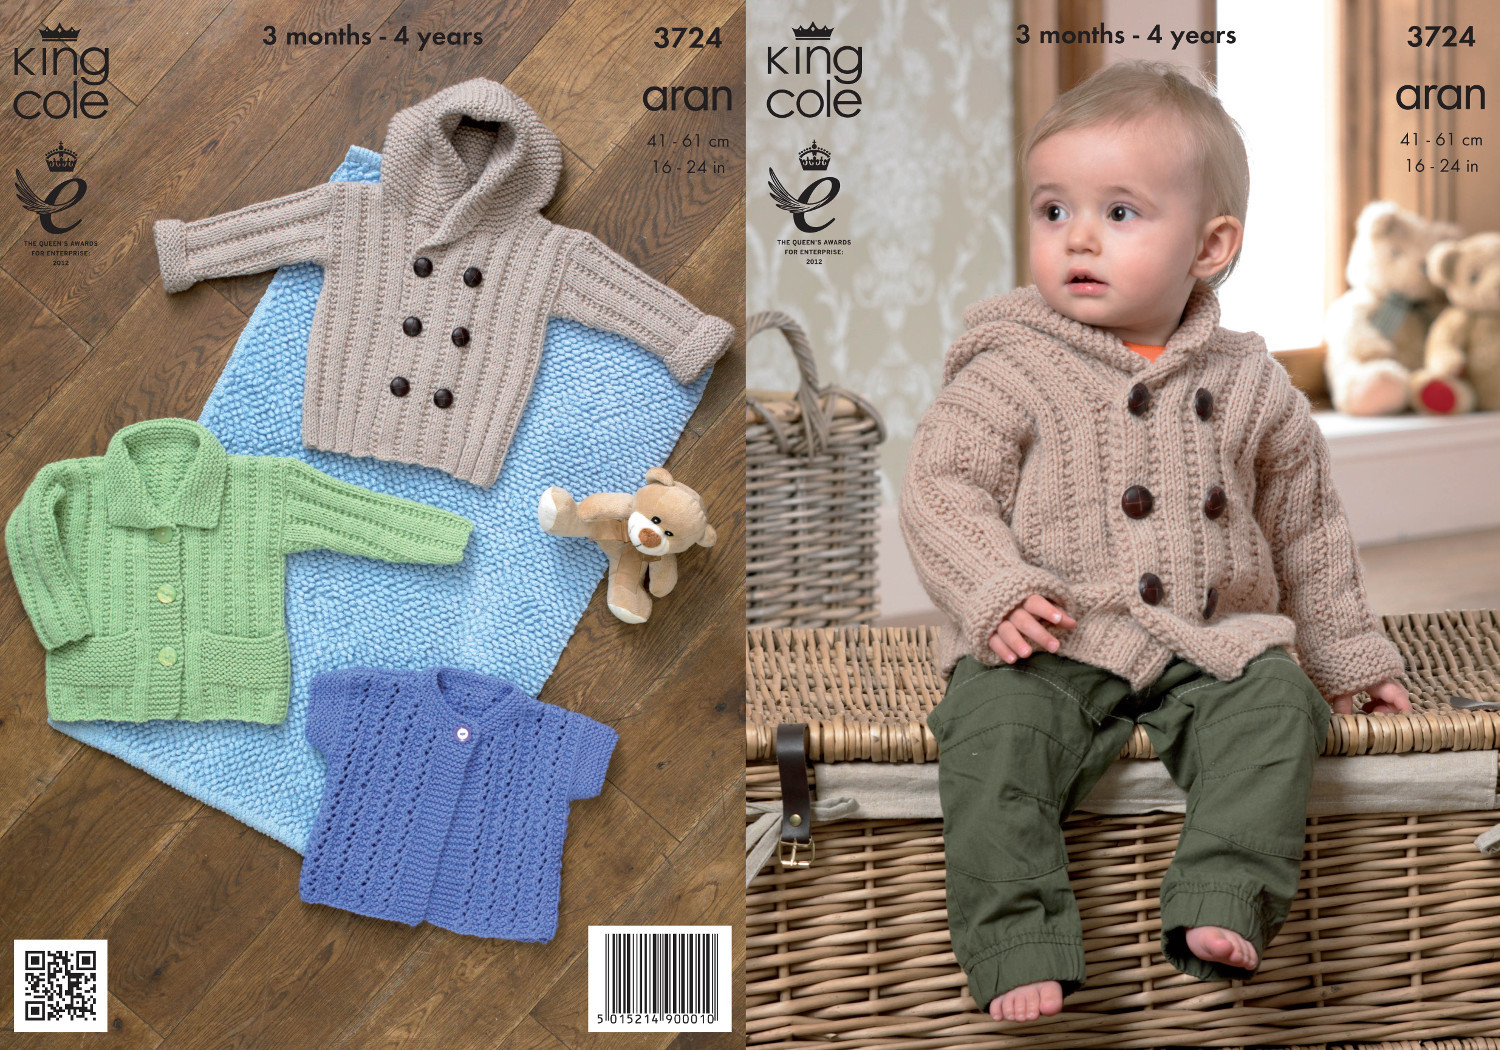 King cole baby aran knitting pattern kids hooded coat jacket lacy king cole baby aran knitting pattern kids hooded coat jacket lacy cardigan 3724 dt1010fo